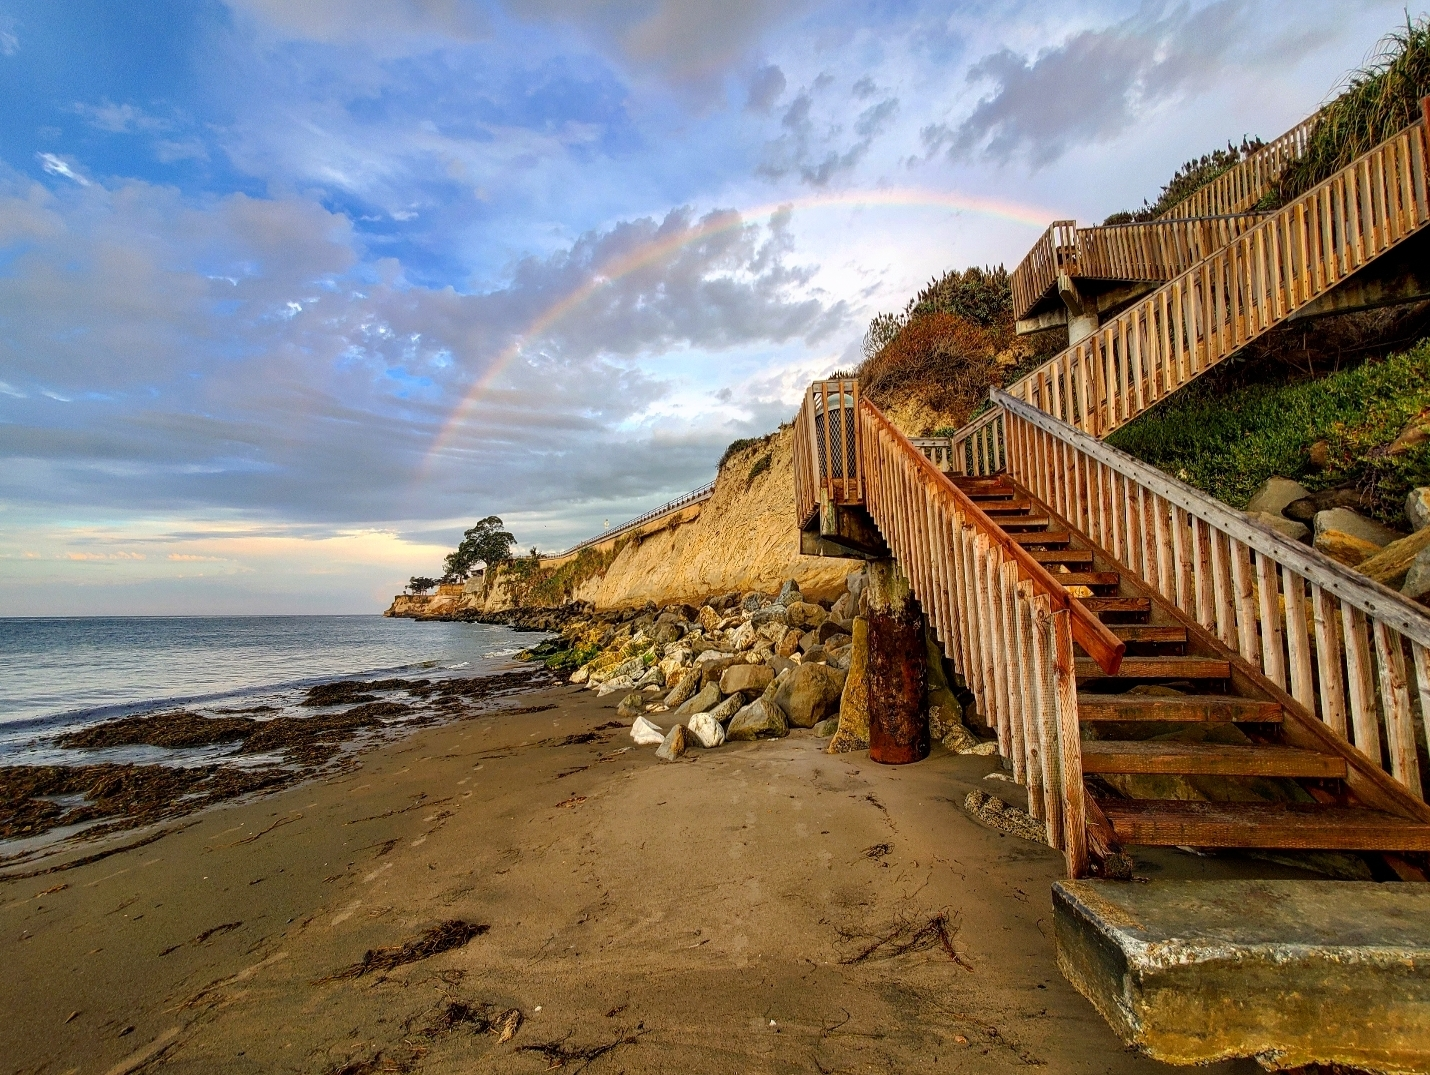 Stairs lead off of a beach with a rainbow in the sky behind.